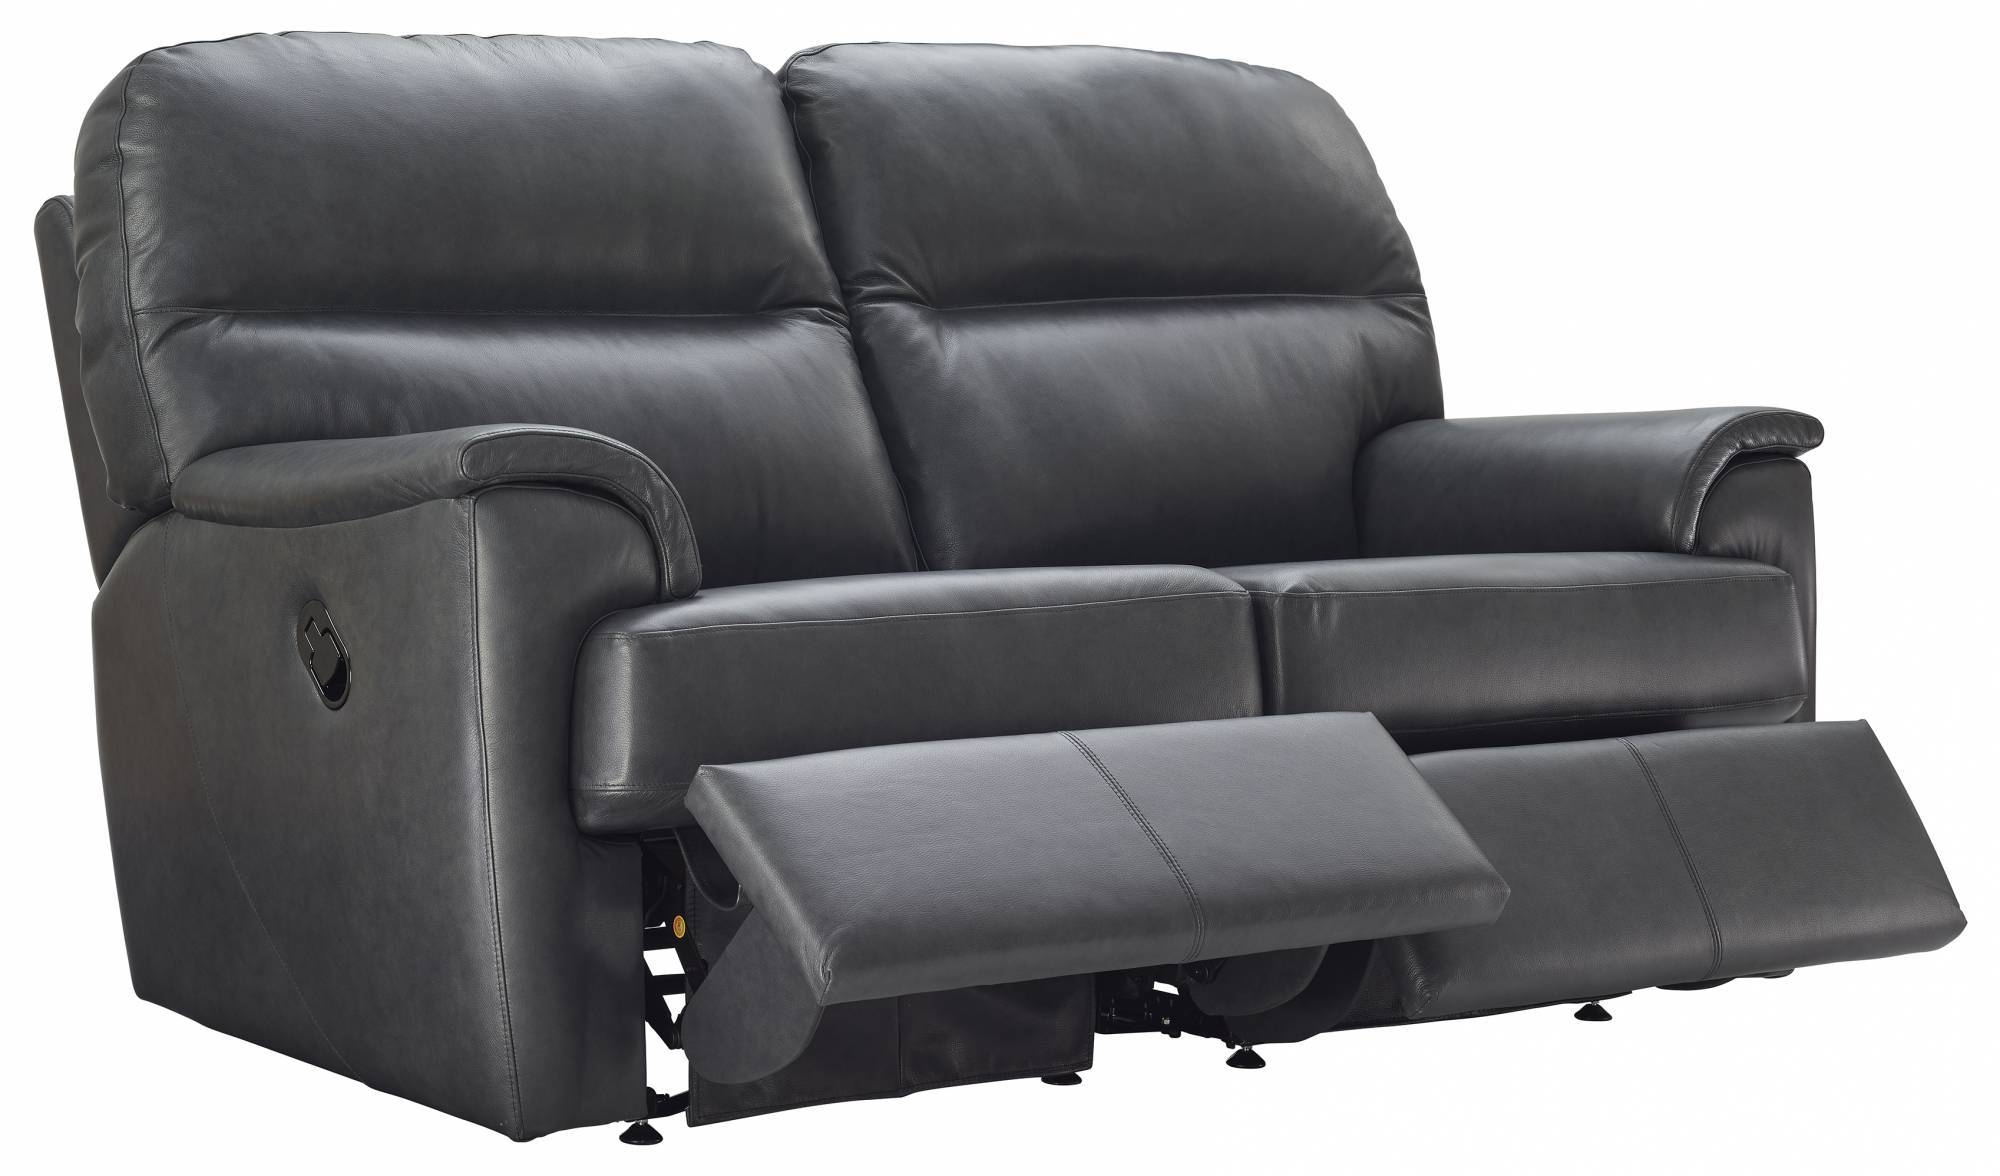 Sofas Center : Two Seater Recliner Sofa Uktwo And Chairstwo Uk for 2 Seat Recliner Sofas (Image 25 of 30)